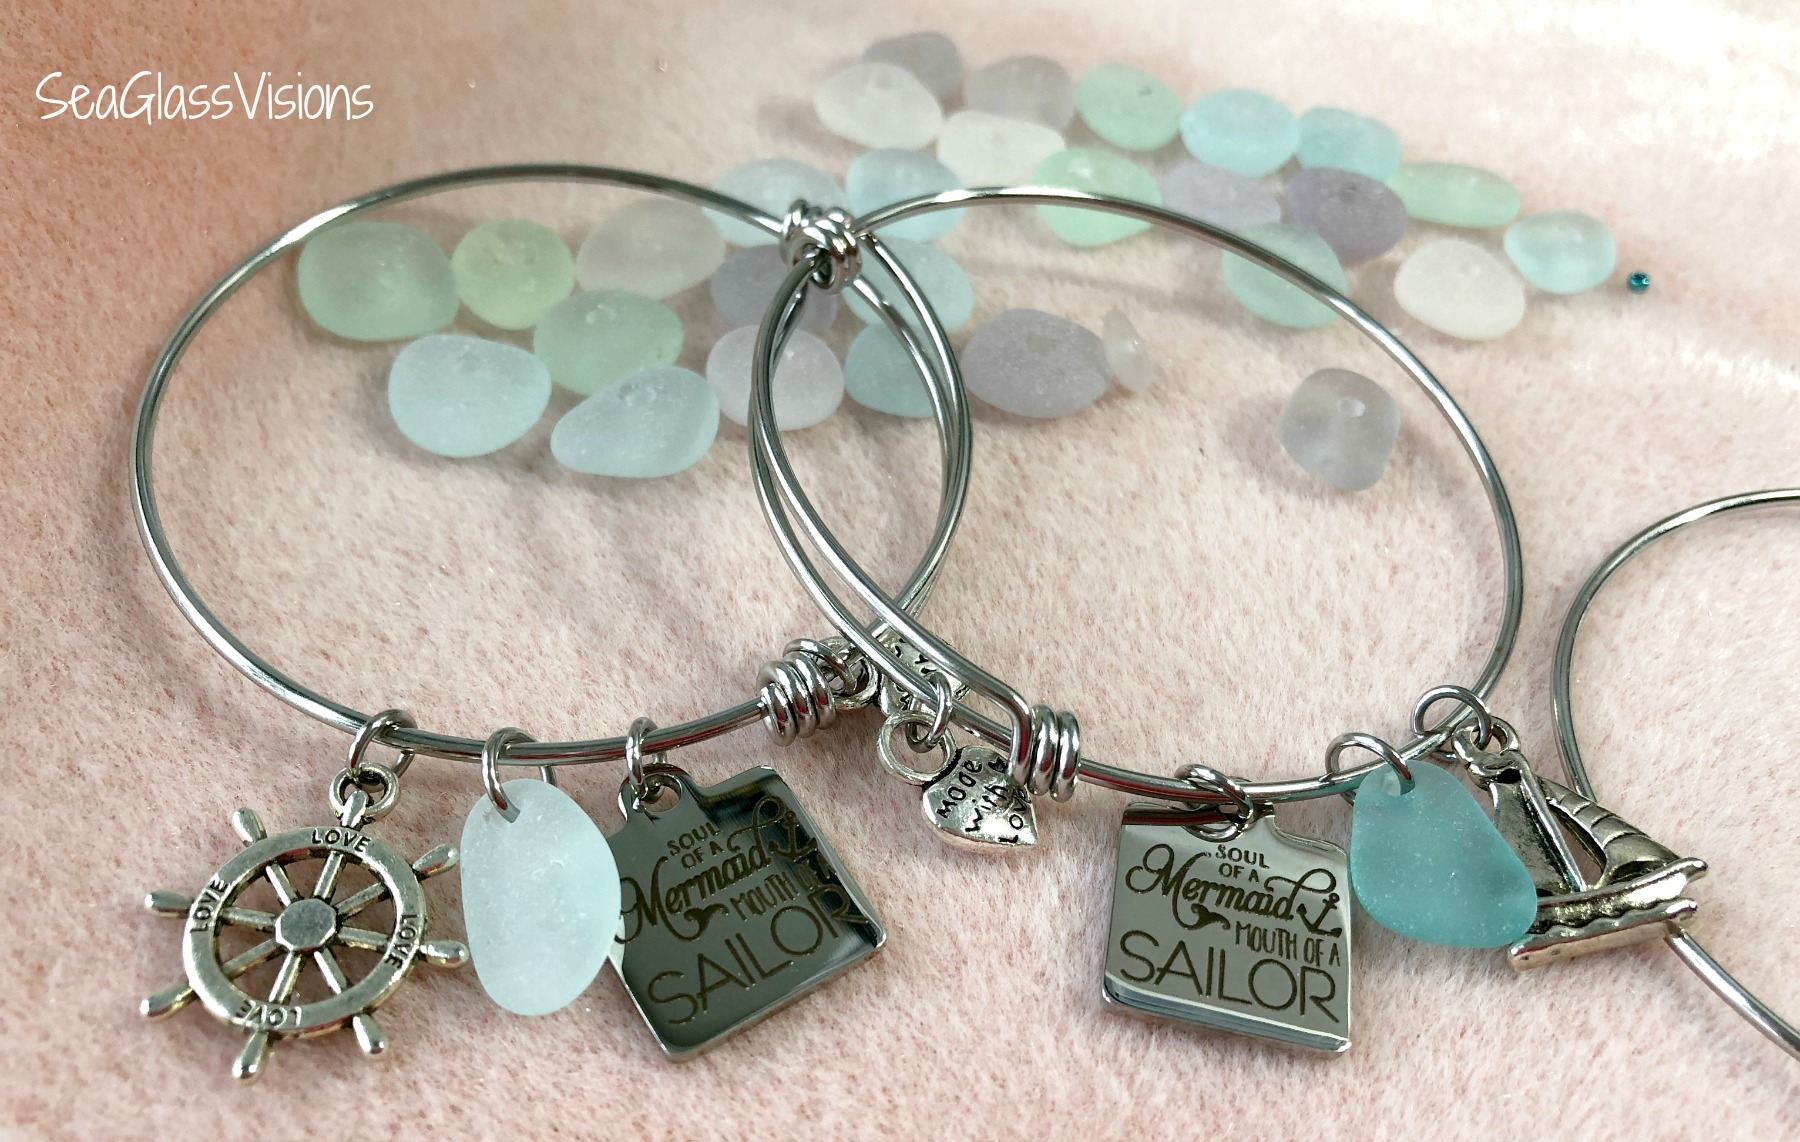 Genuine Sea Glass and Mermaid Bracelets by Sea Glass Visions